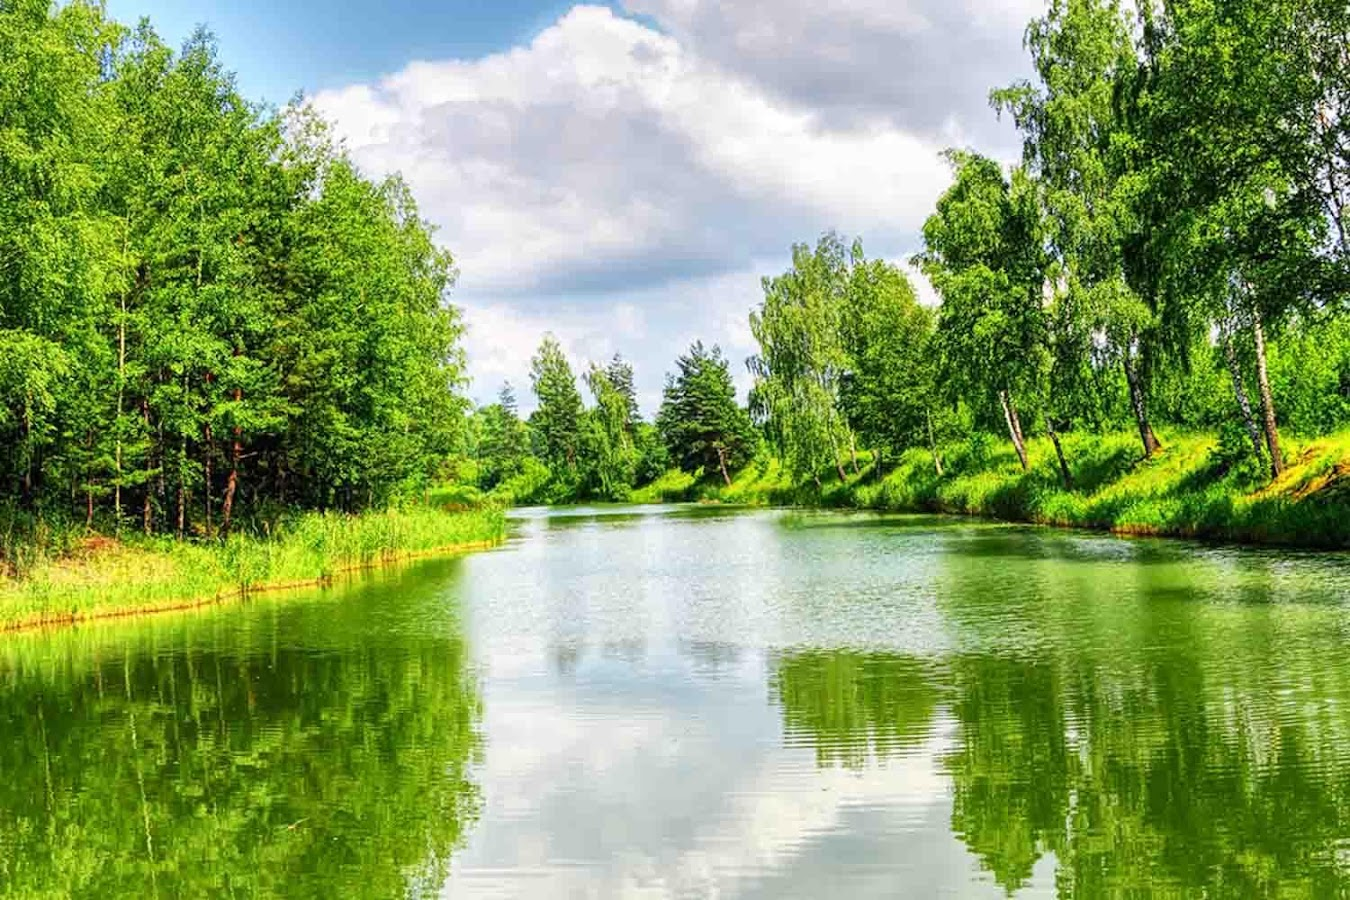 Nature Landscape Wallpaper Apl Android Di Google Play